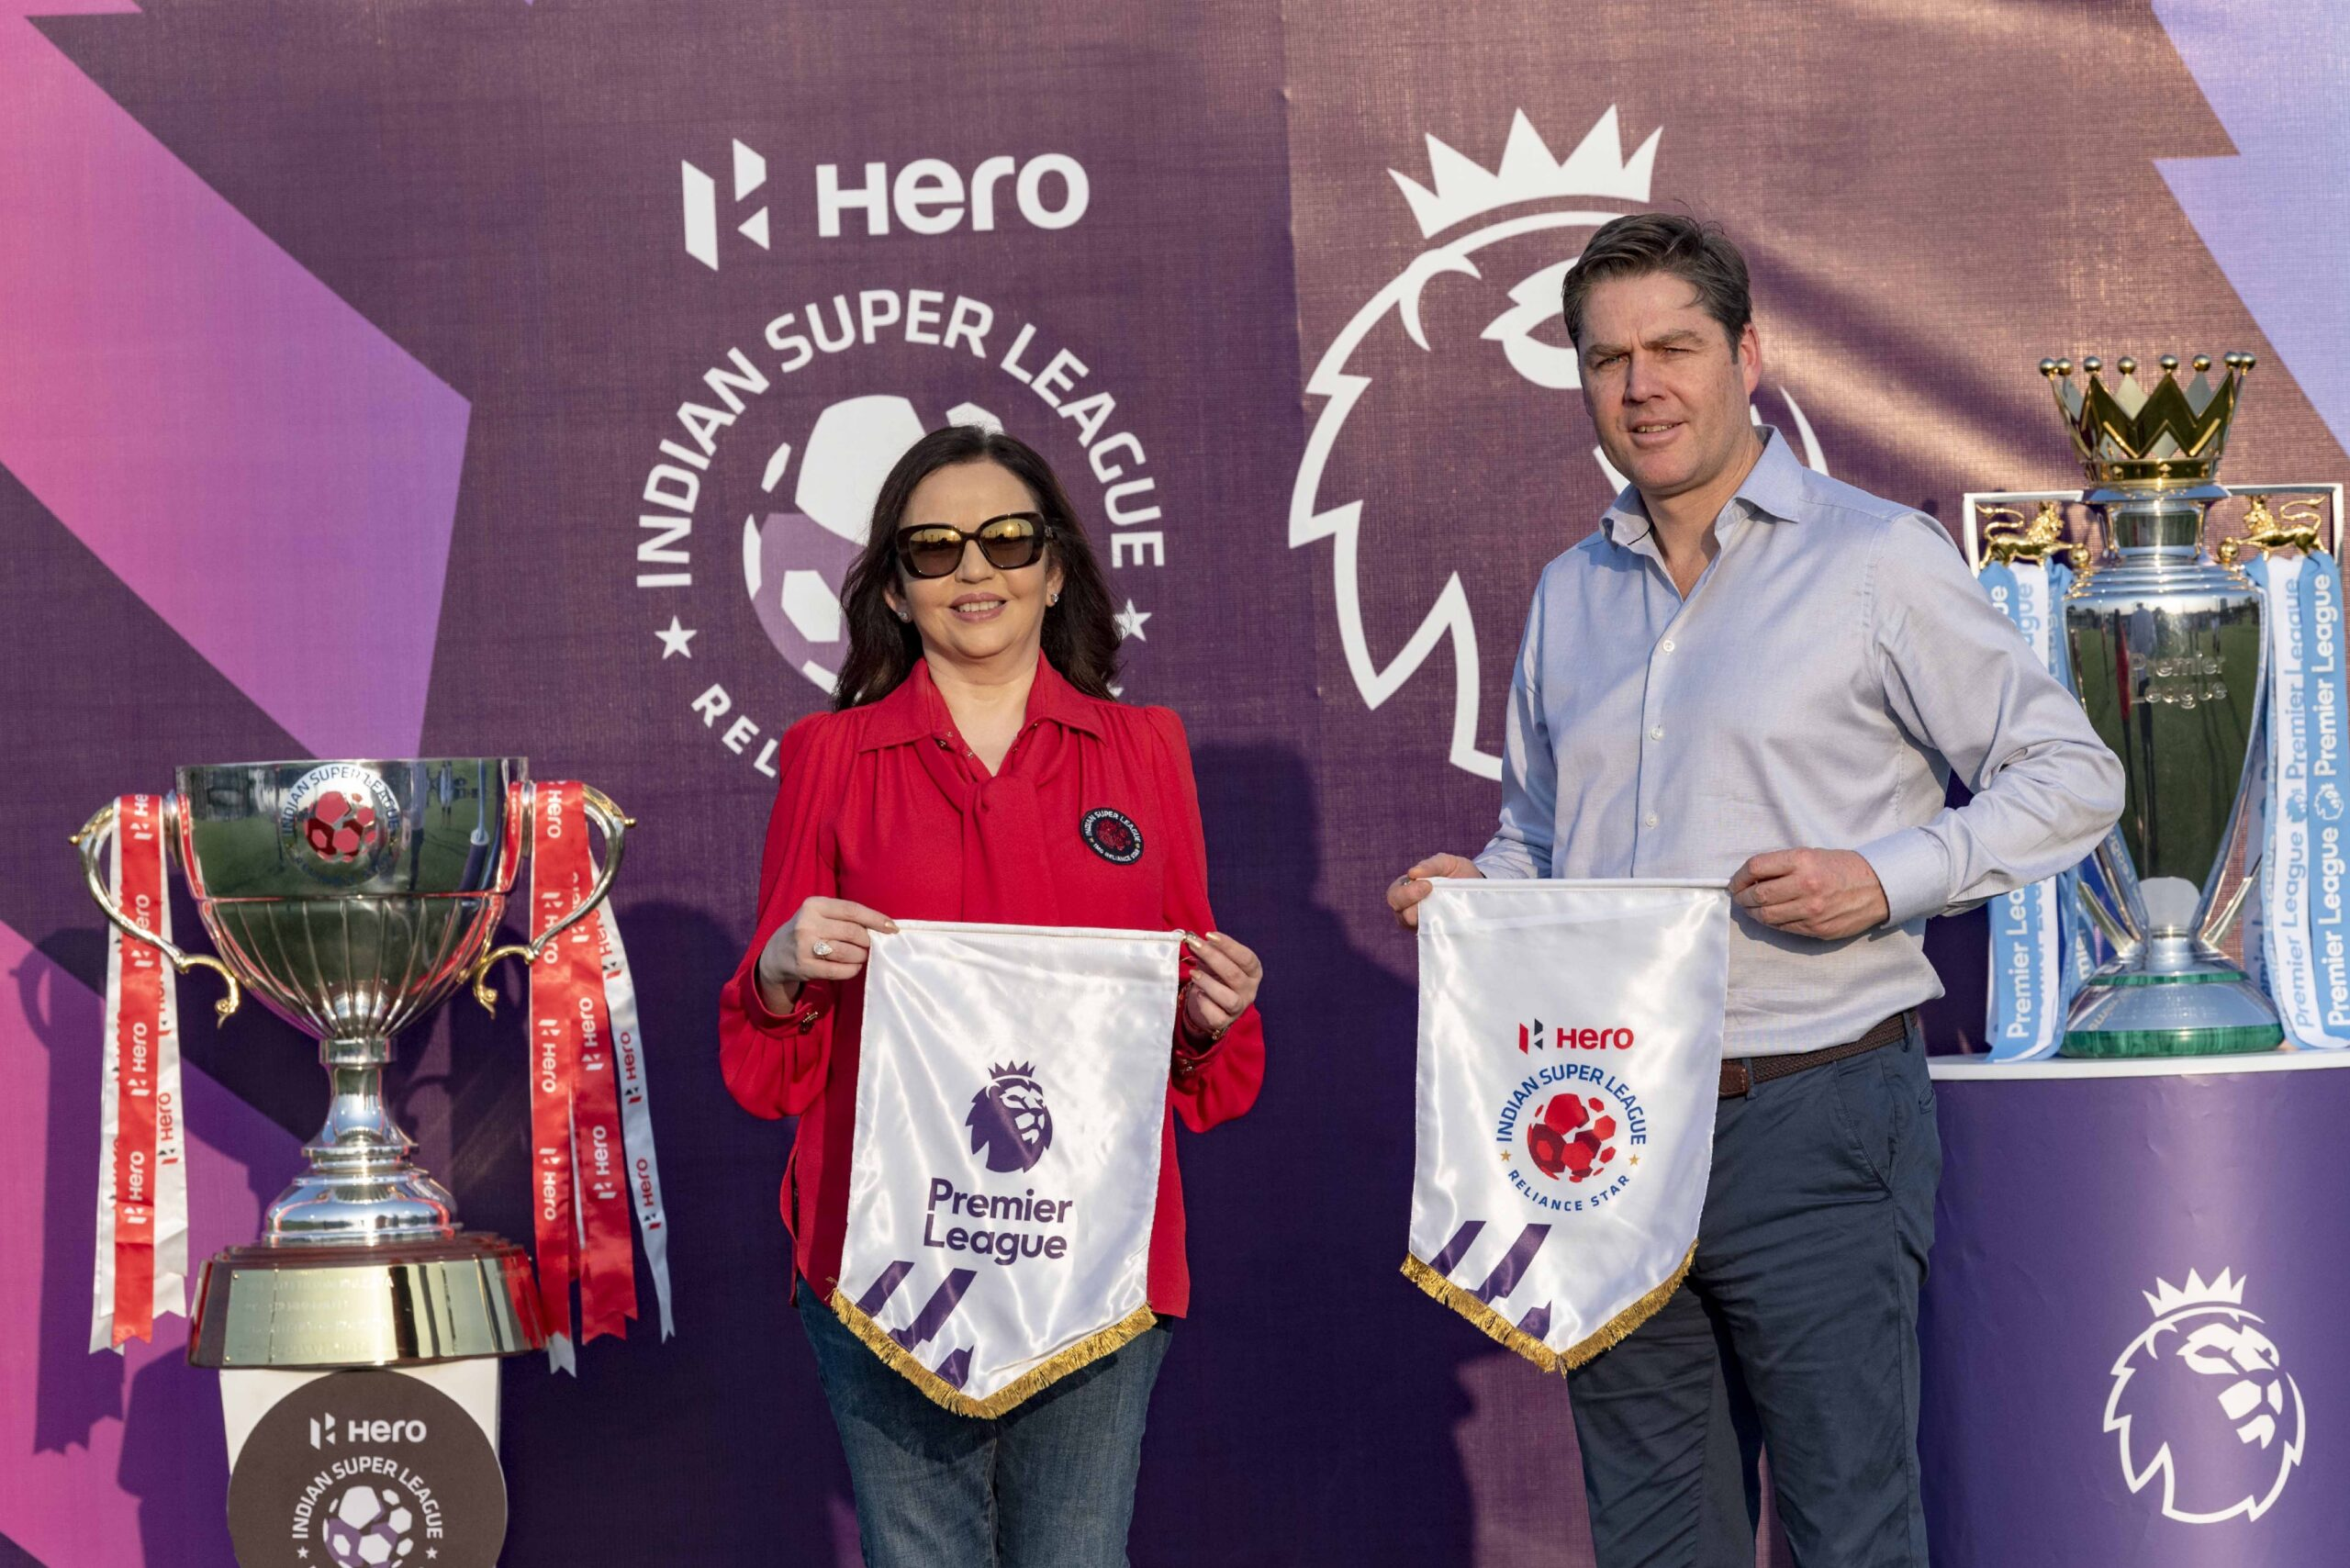 Premier League and Hero ISL demonstrate commitment to development of football in India- 28022020